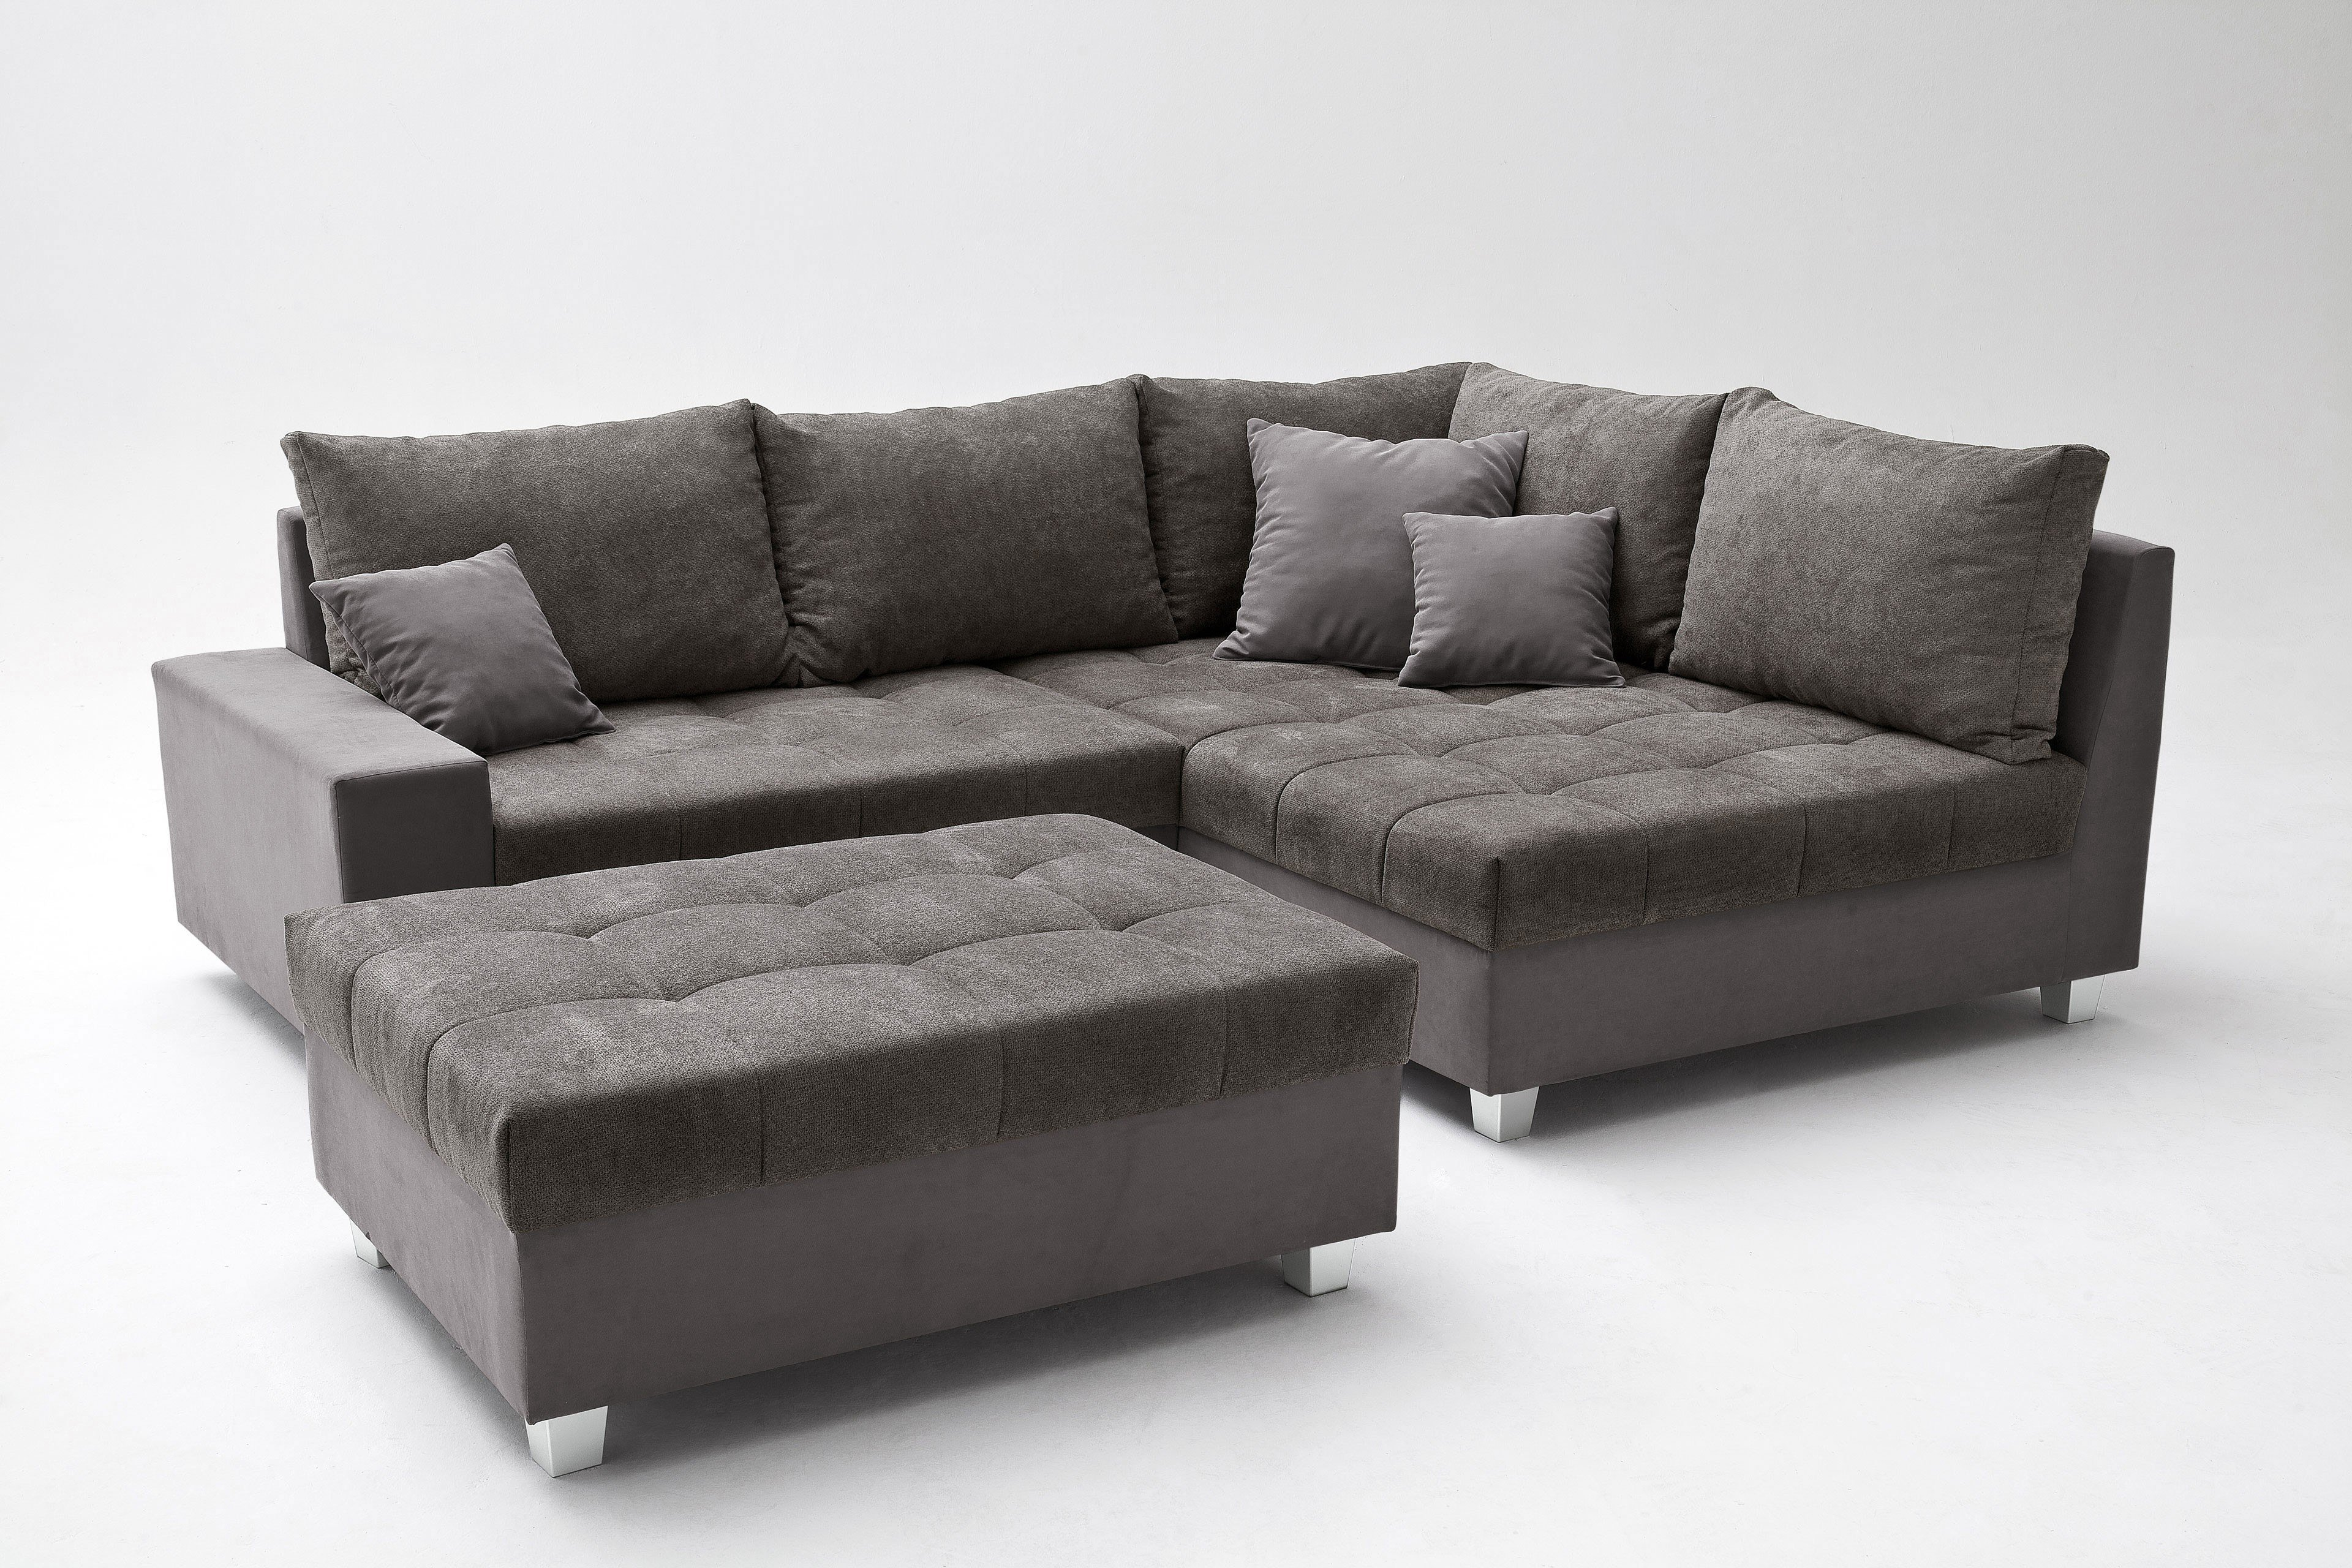 Ecksofa Online Shop Black Red White Sofas Amazing Home Interior